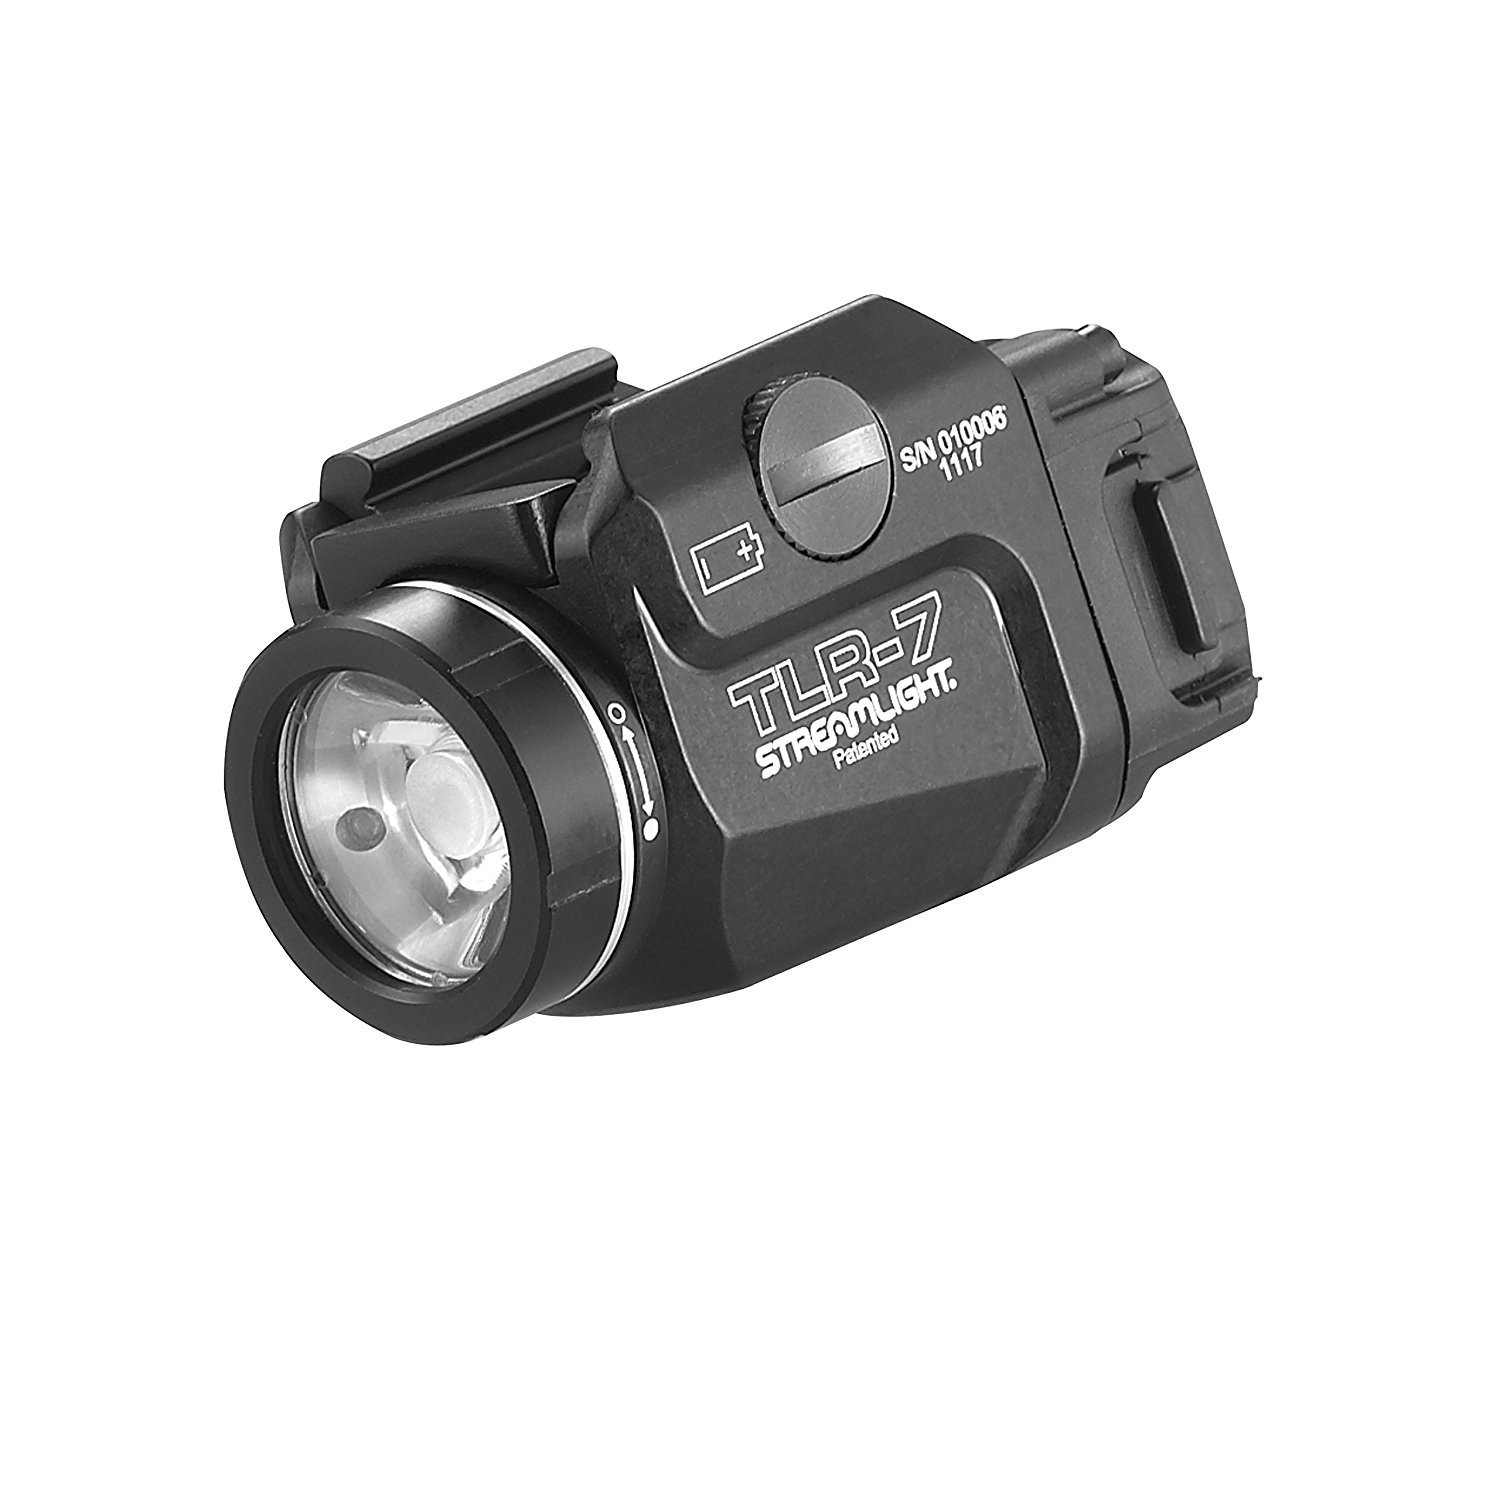 Streamlight 69420 Tlr-7 500 lm Low Profile Rail Mounted Tactical Light